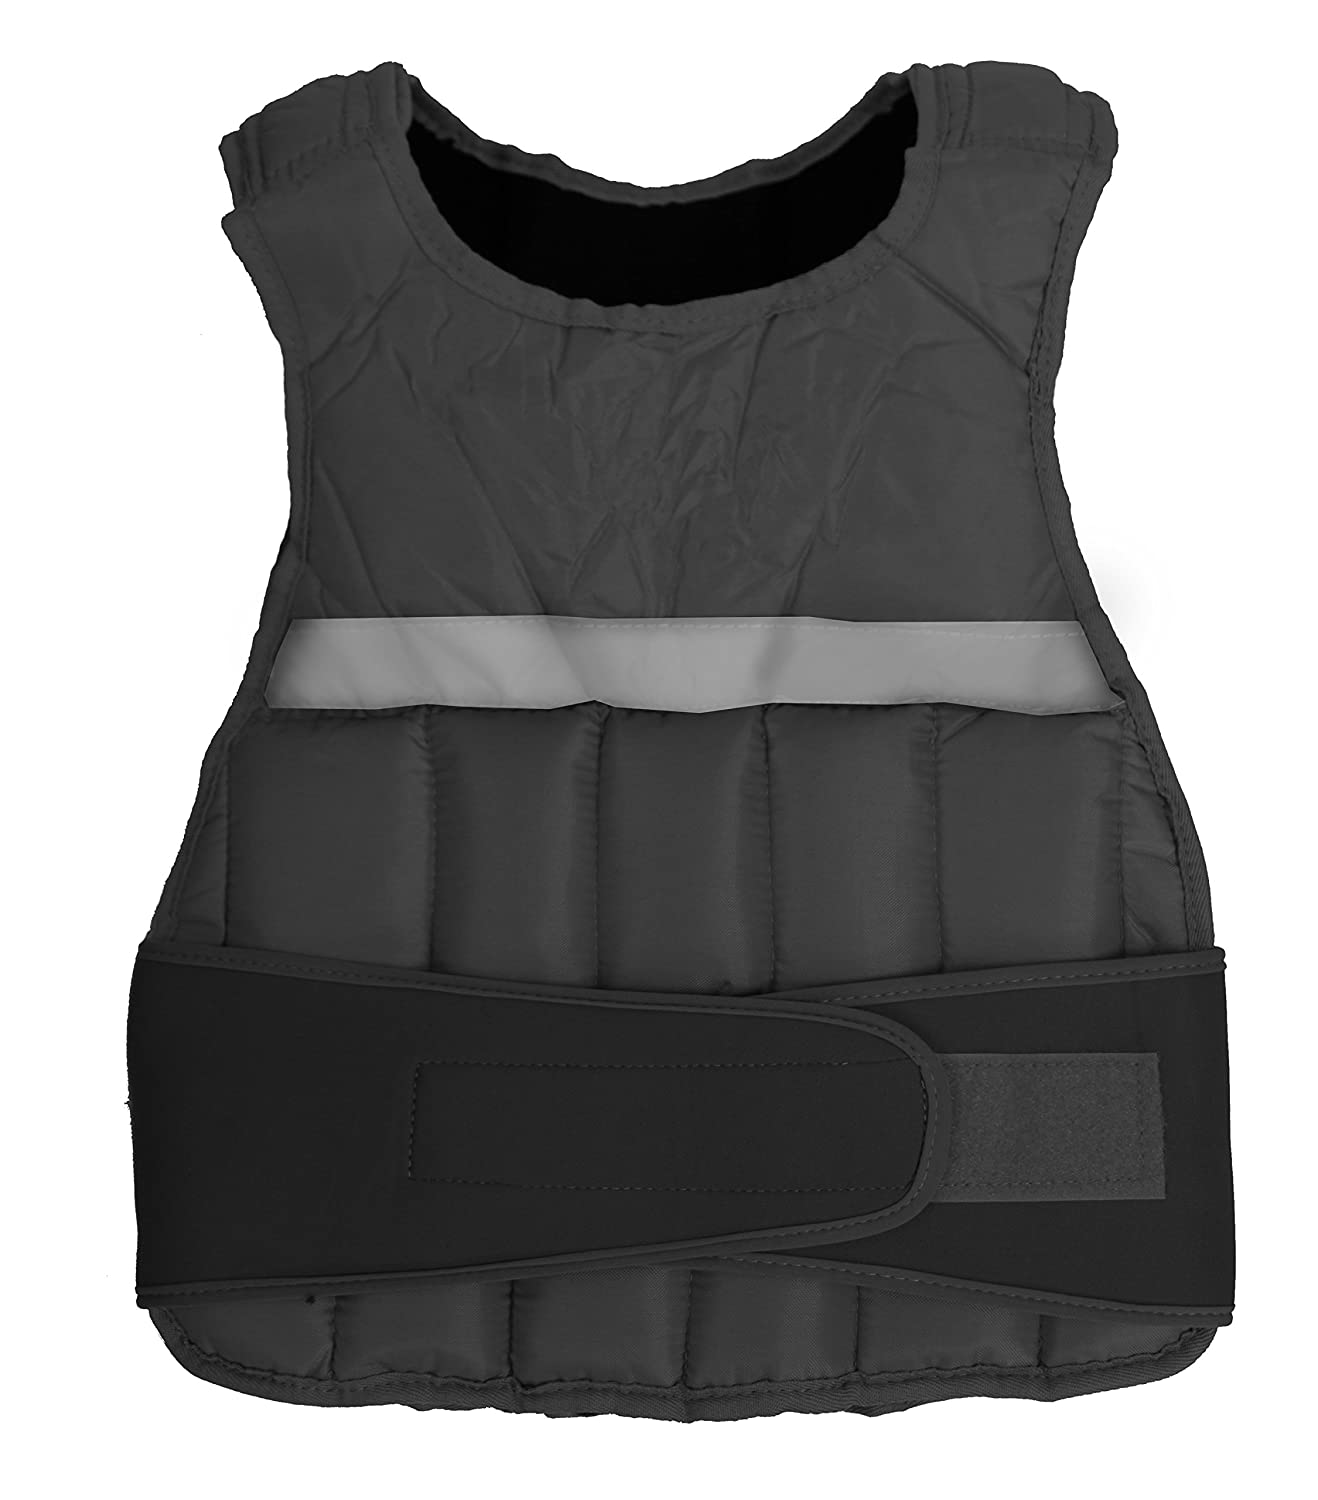 Go Fit Weighted Vest 0 5 to 5Kg Amazon Sports & Outdoors